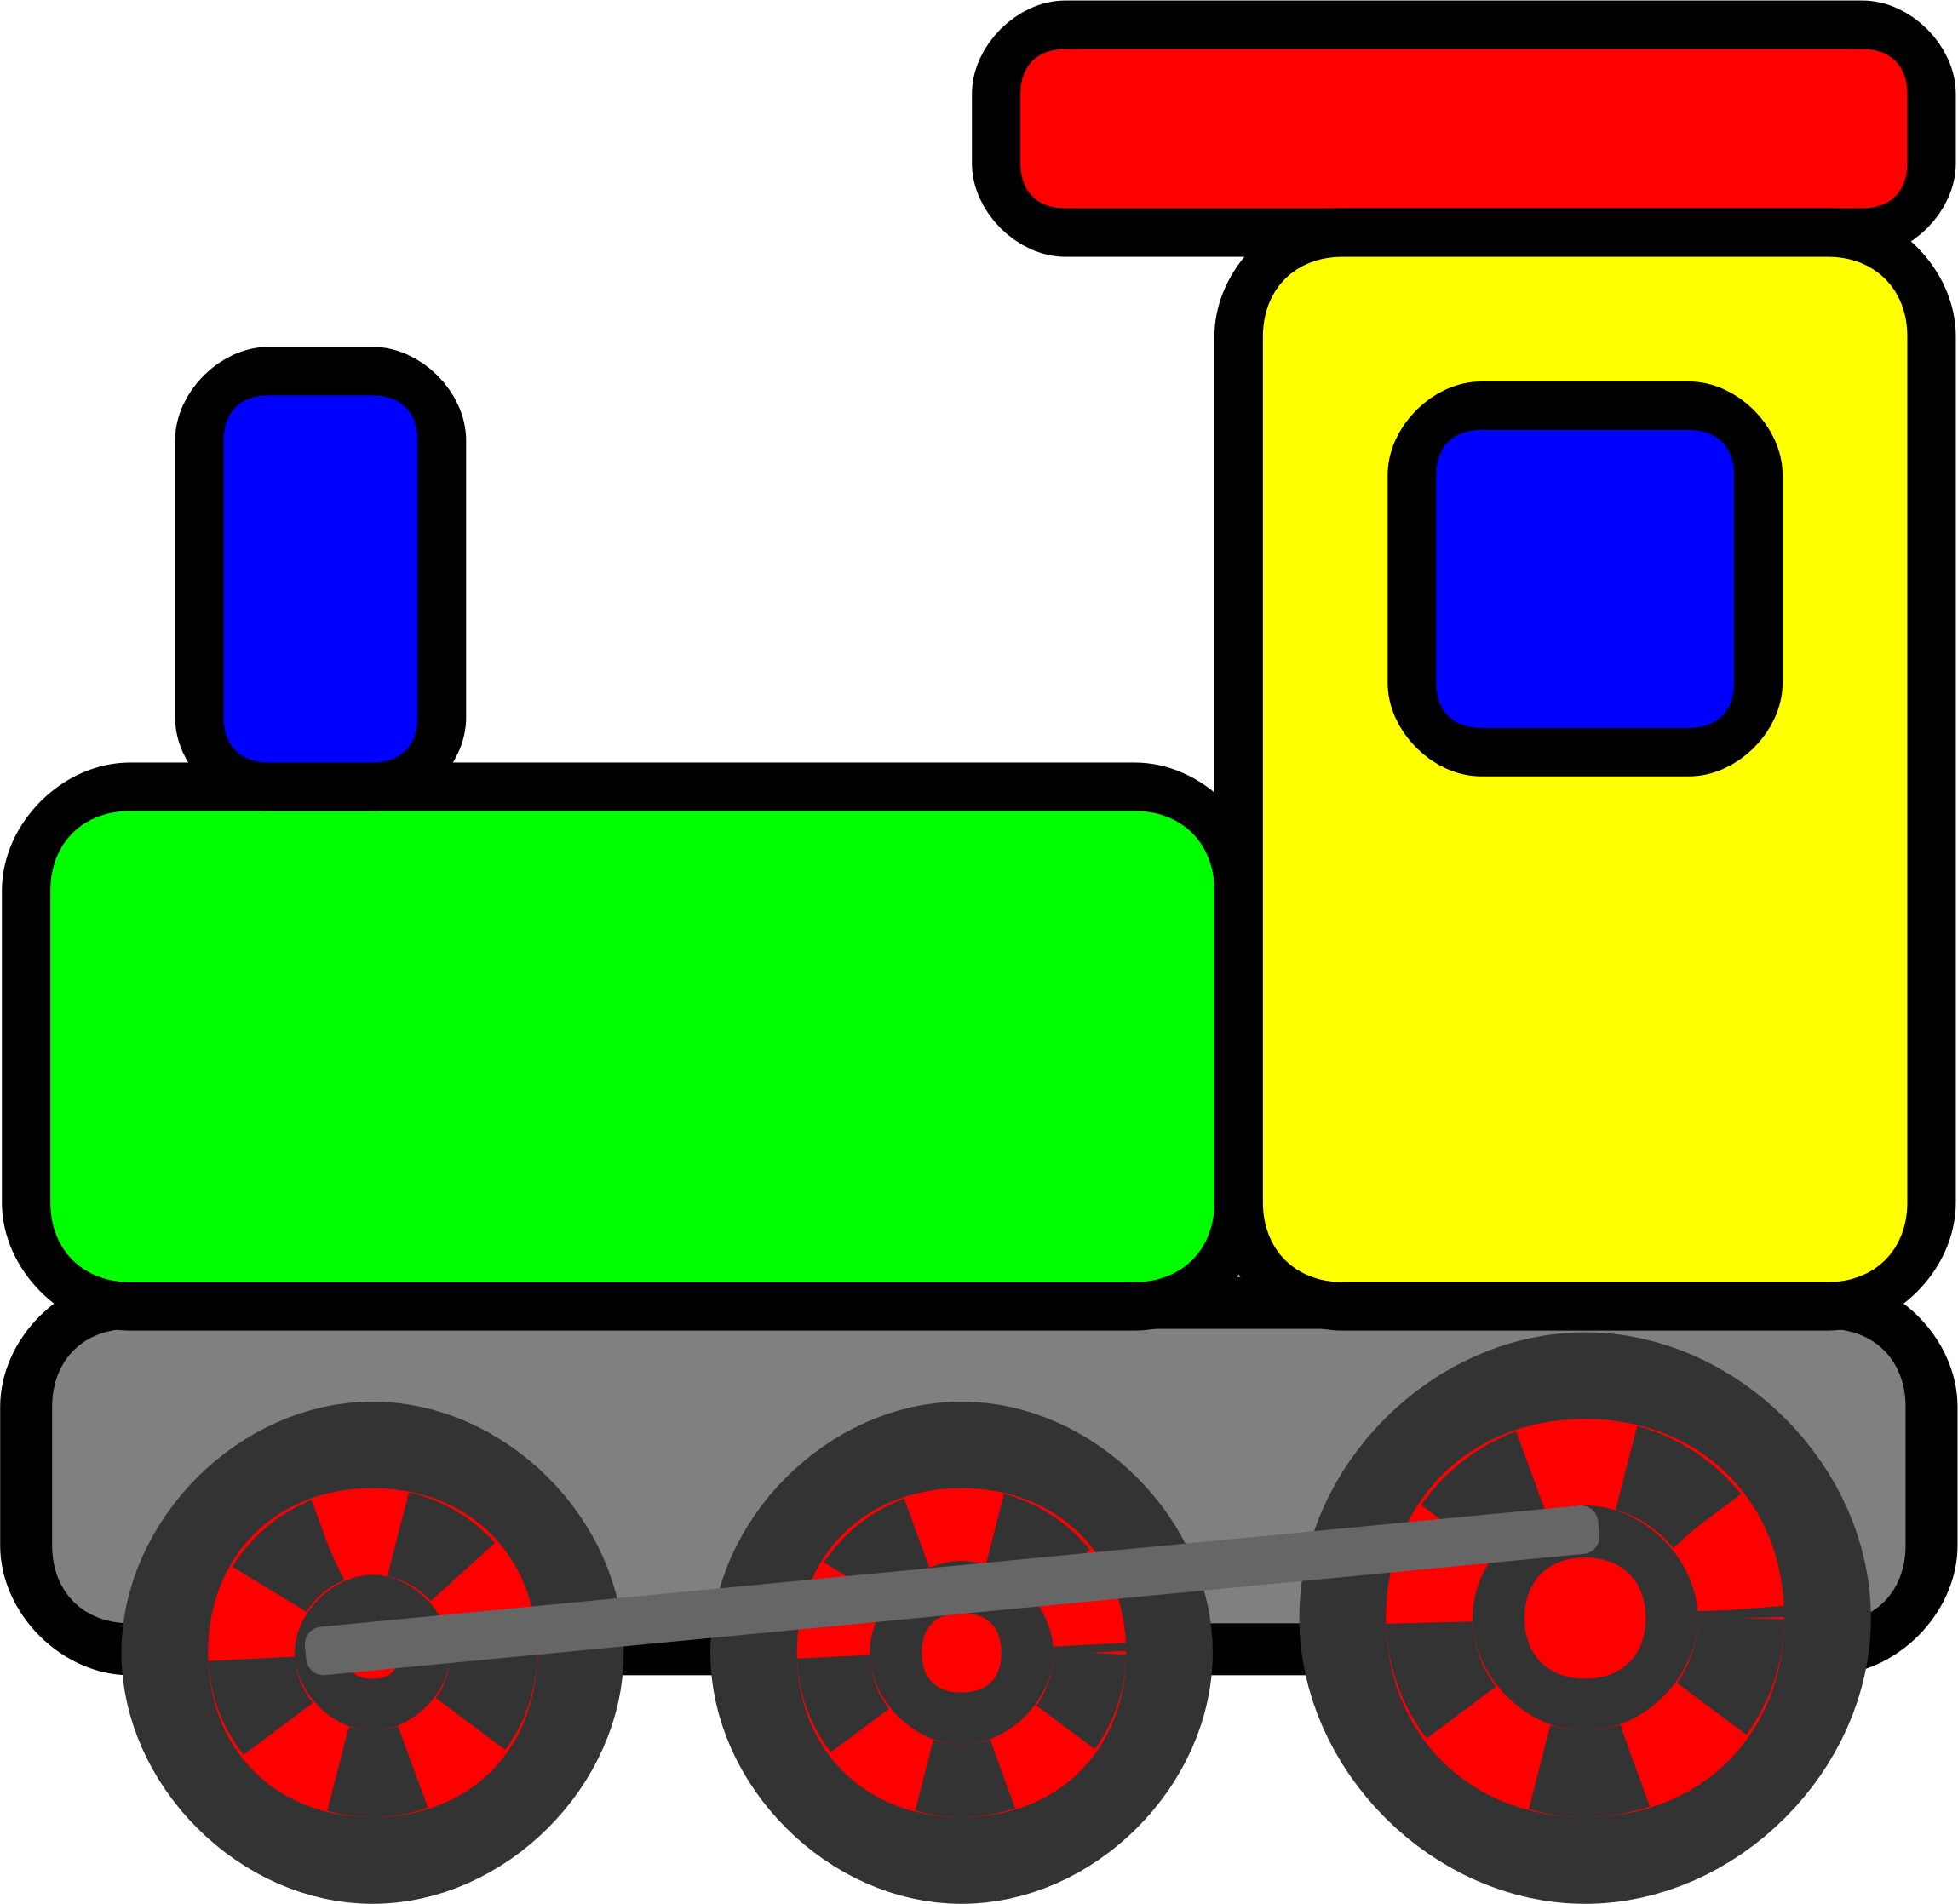 14 cliparts for free. Download Caboose clipart old train and use in.